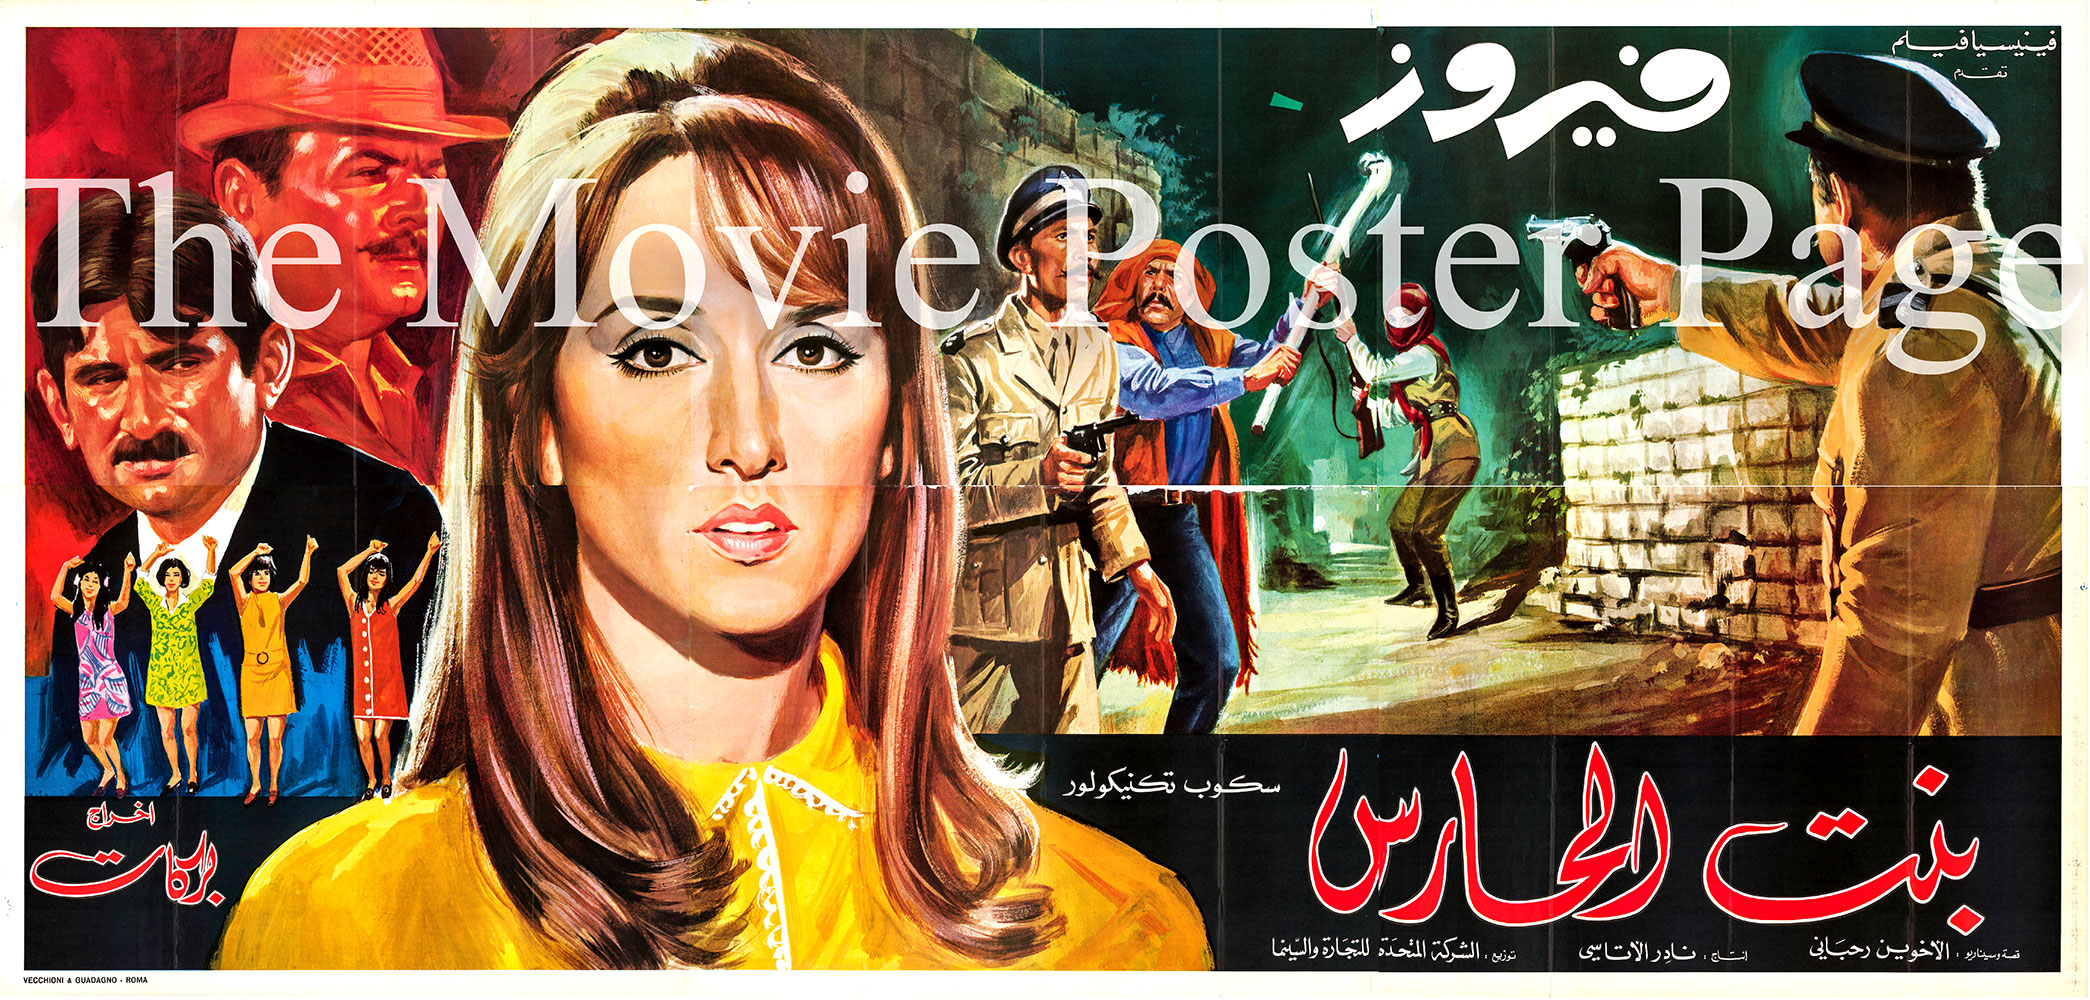 Pictured is an Italian billboard promotional poster for the 1967 Henry Barakat film The Guard's Daughter starring Fairuz as Nejma.